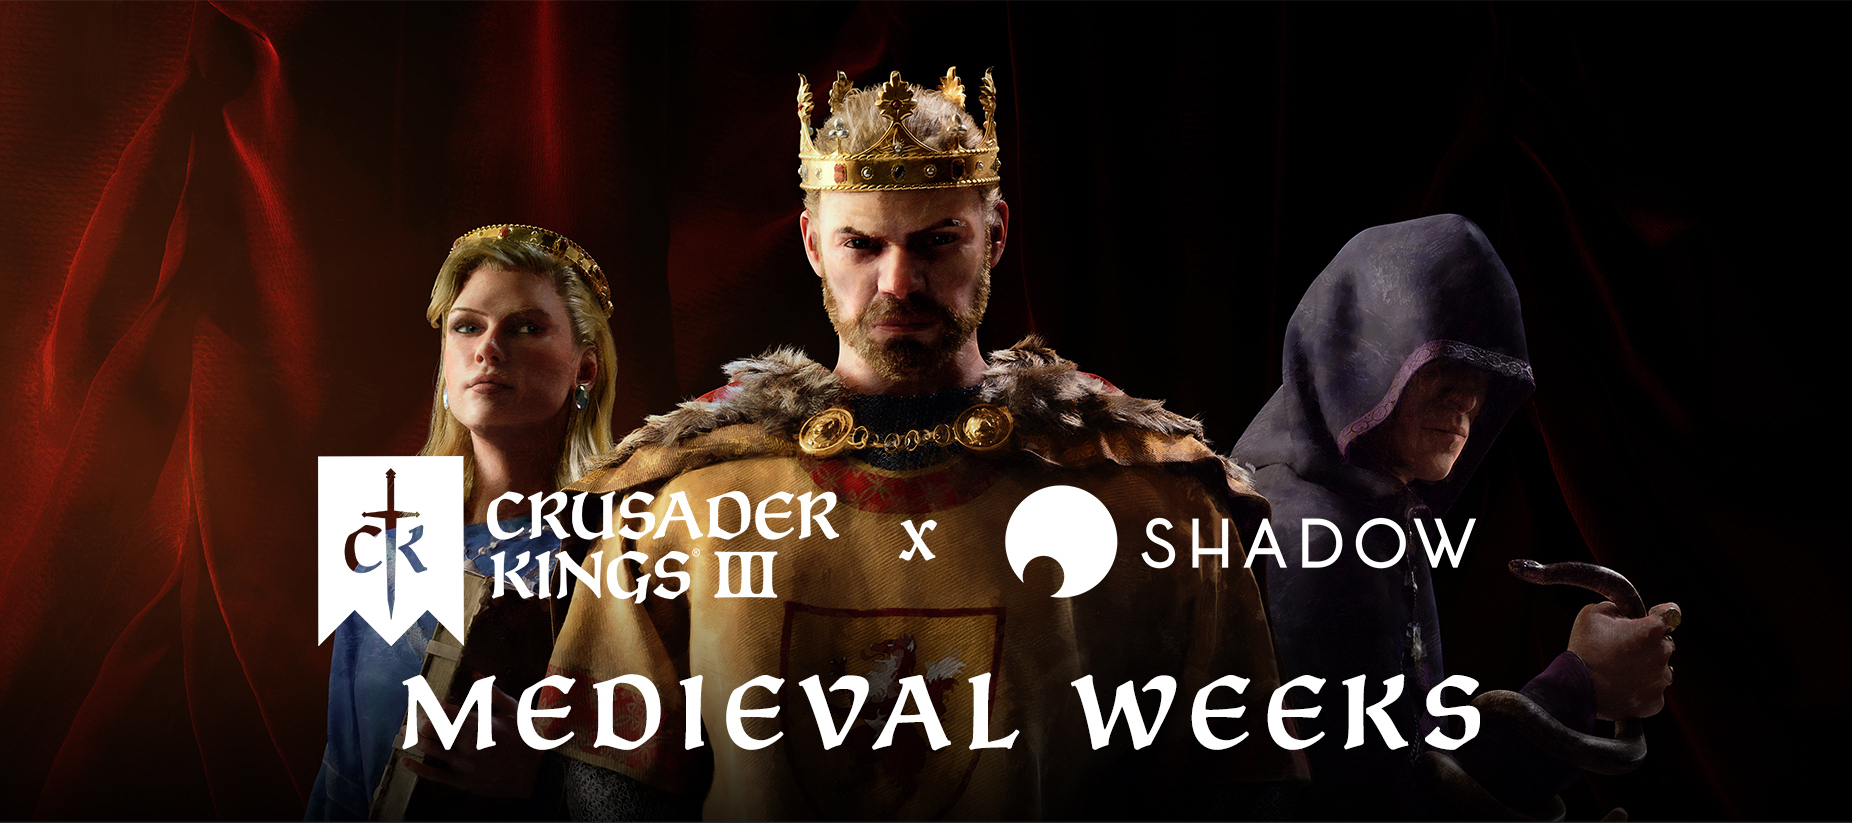 Crusader Kings 3 Challenge: Create Your Own Religion & Win Prizes!